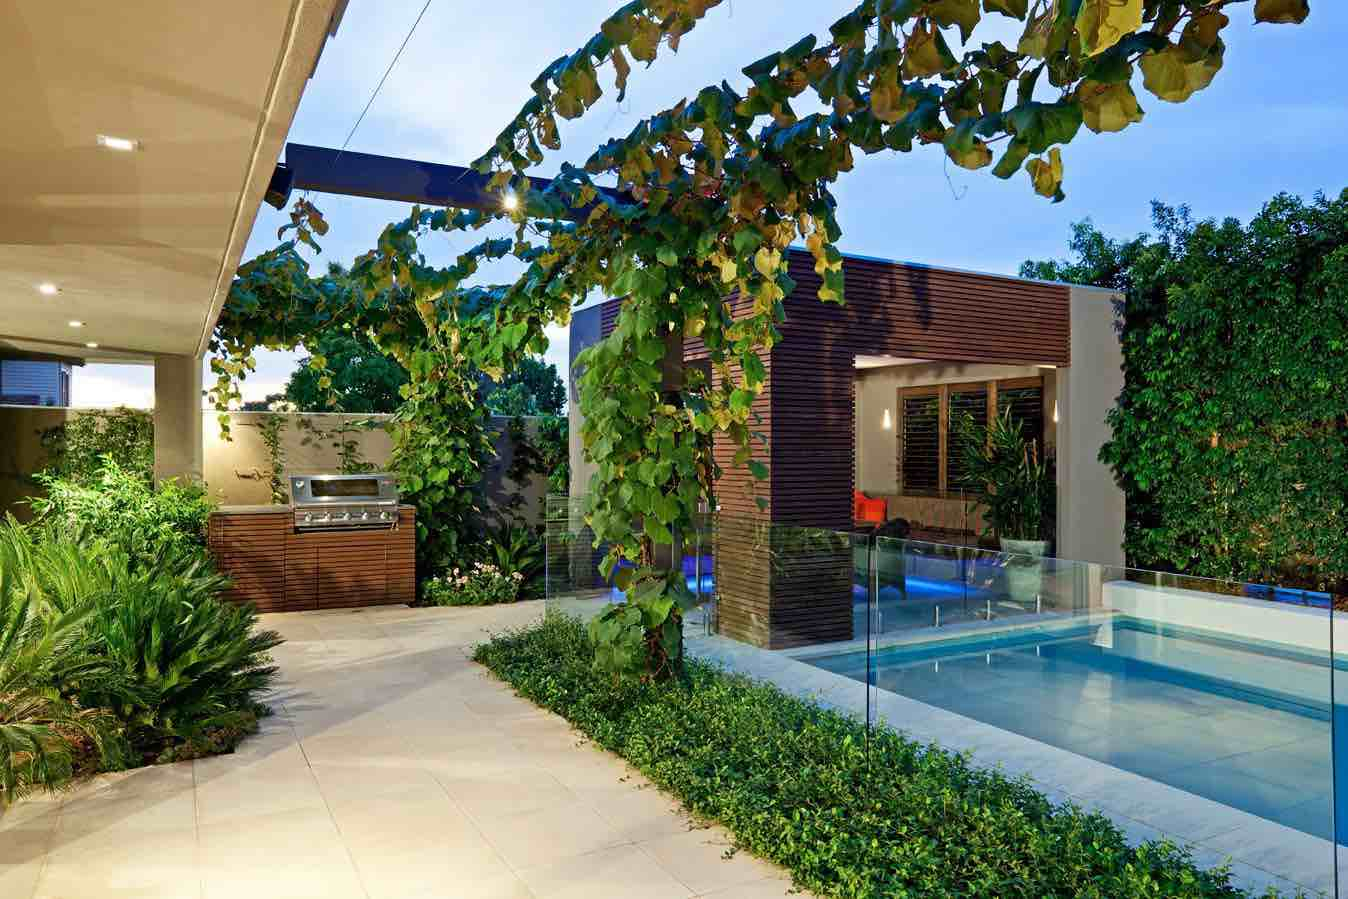 41 backyard design ideas for small yards worthminer for Home yard ideas